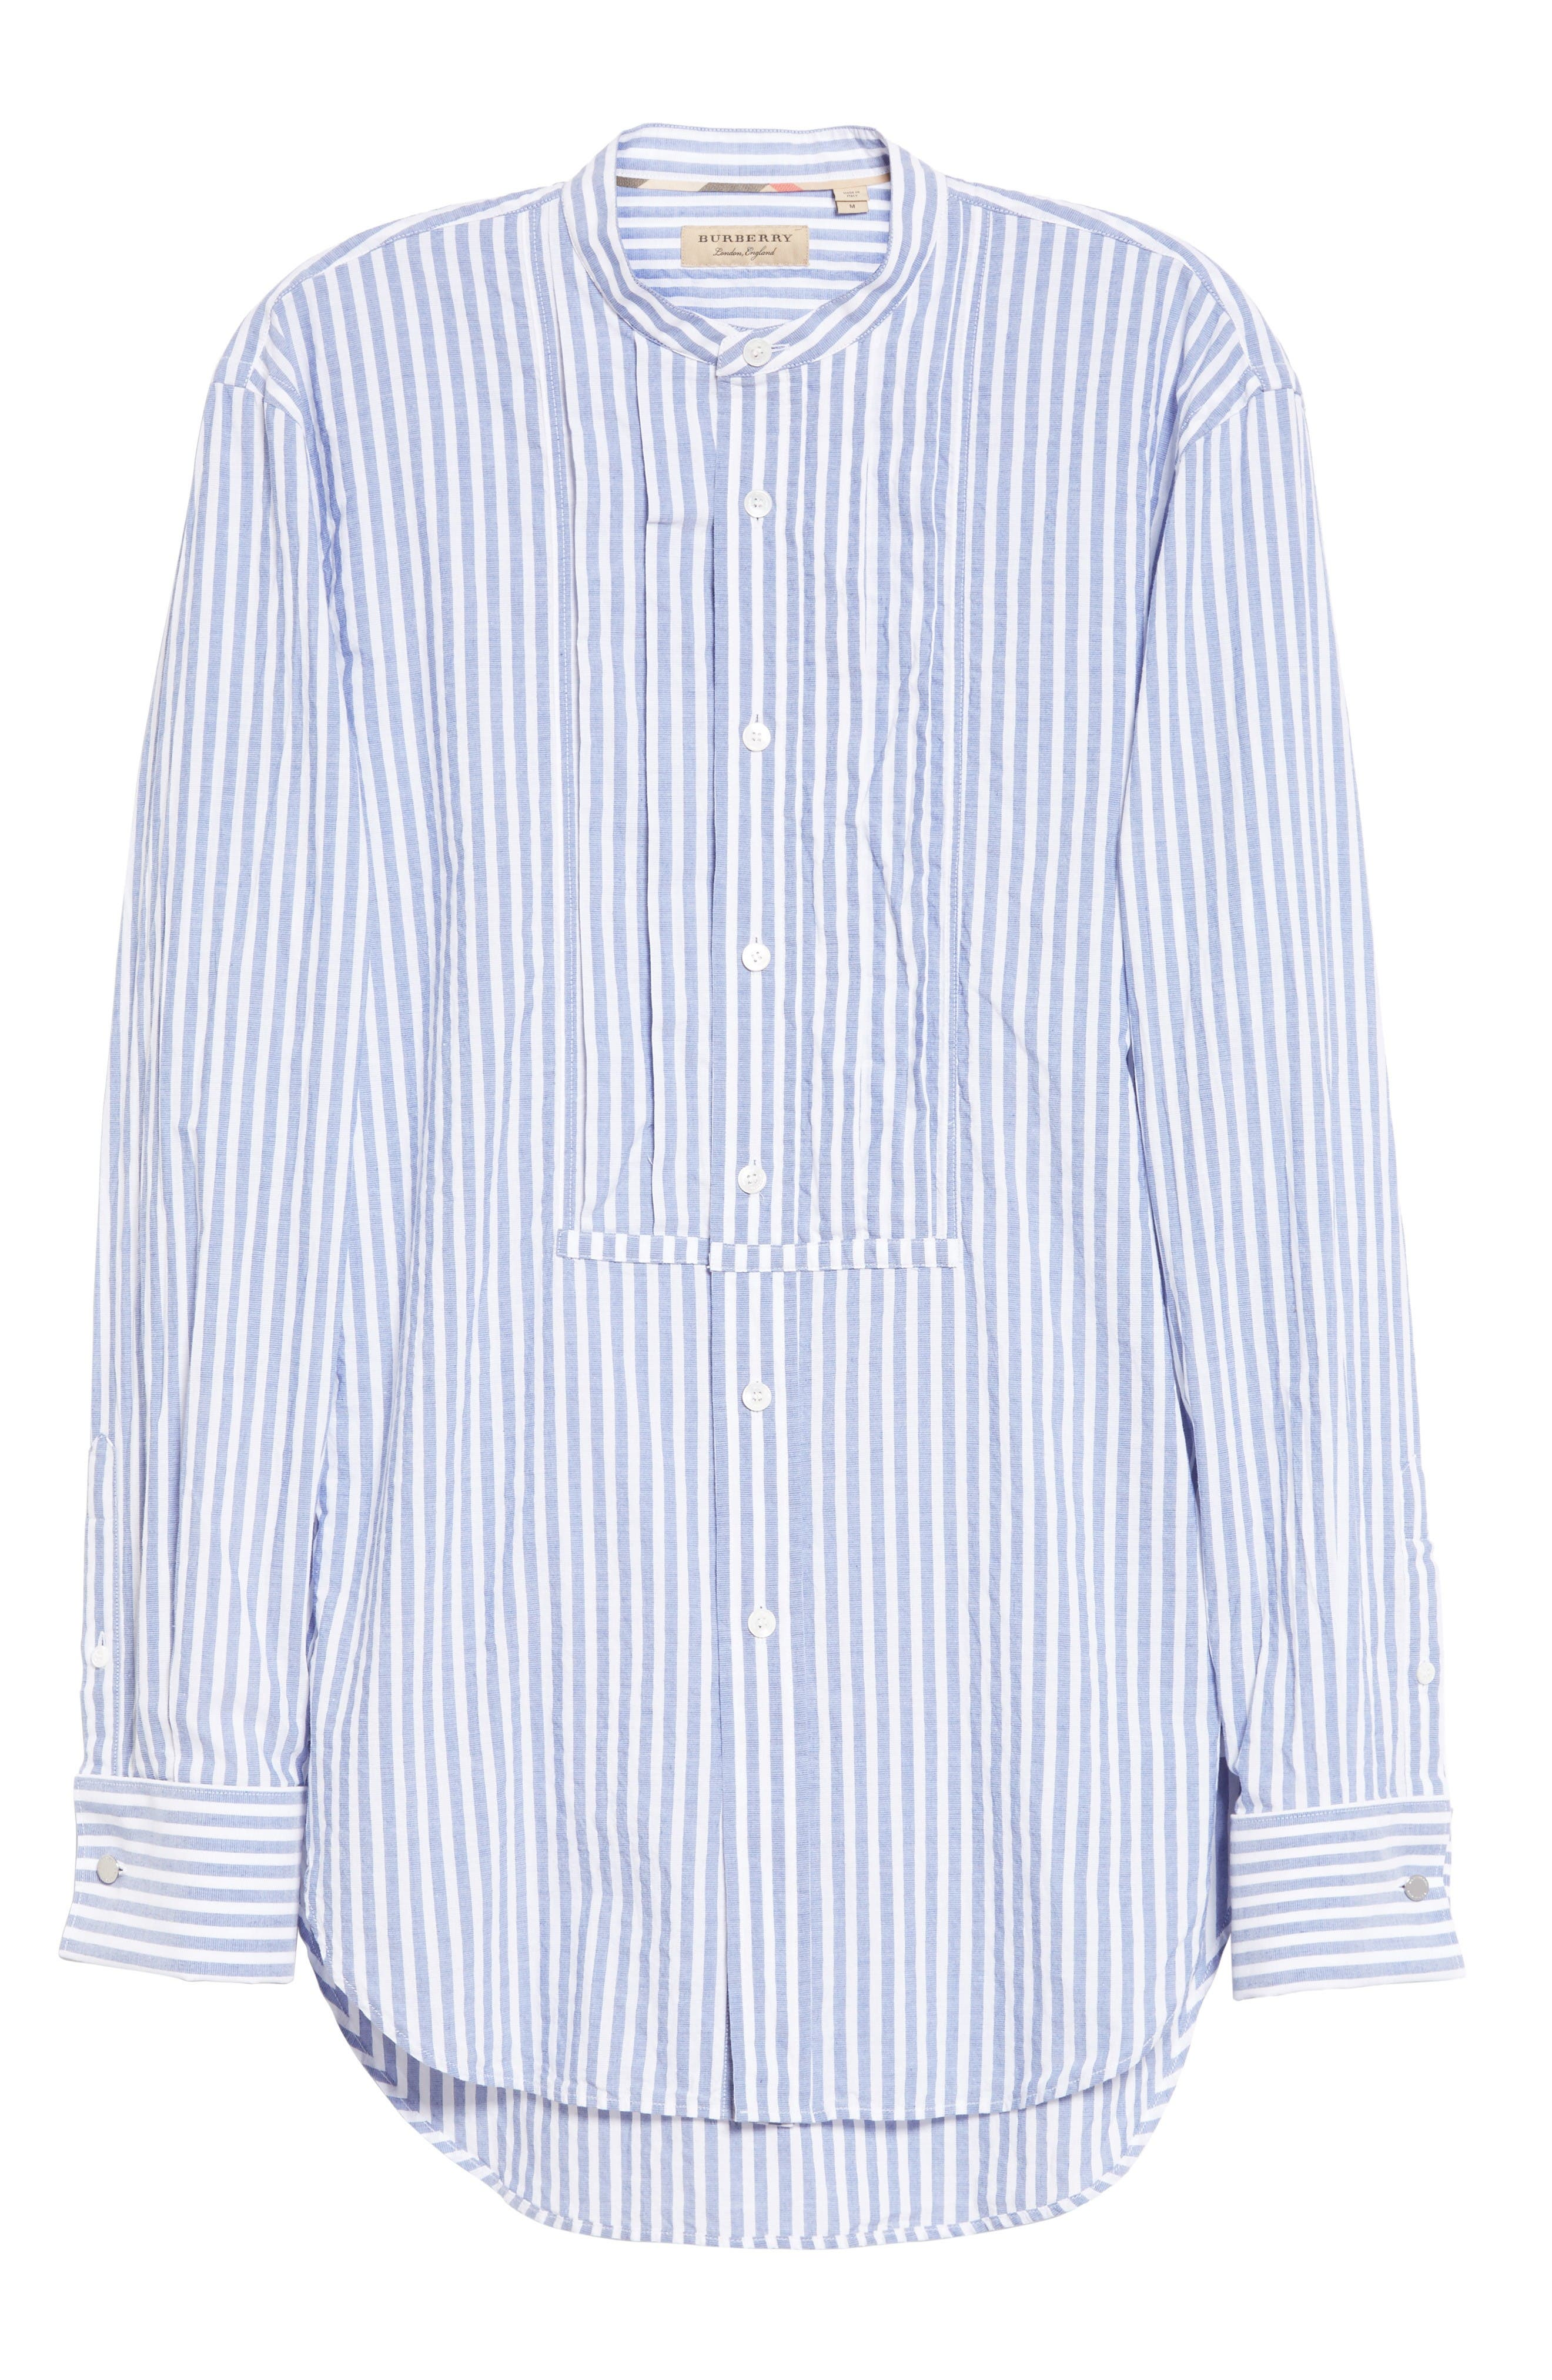 Benfleet Stripe Cotton Top,                             Alternate thumbnail 4, color,                             Pale Blue/ White